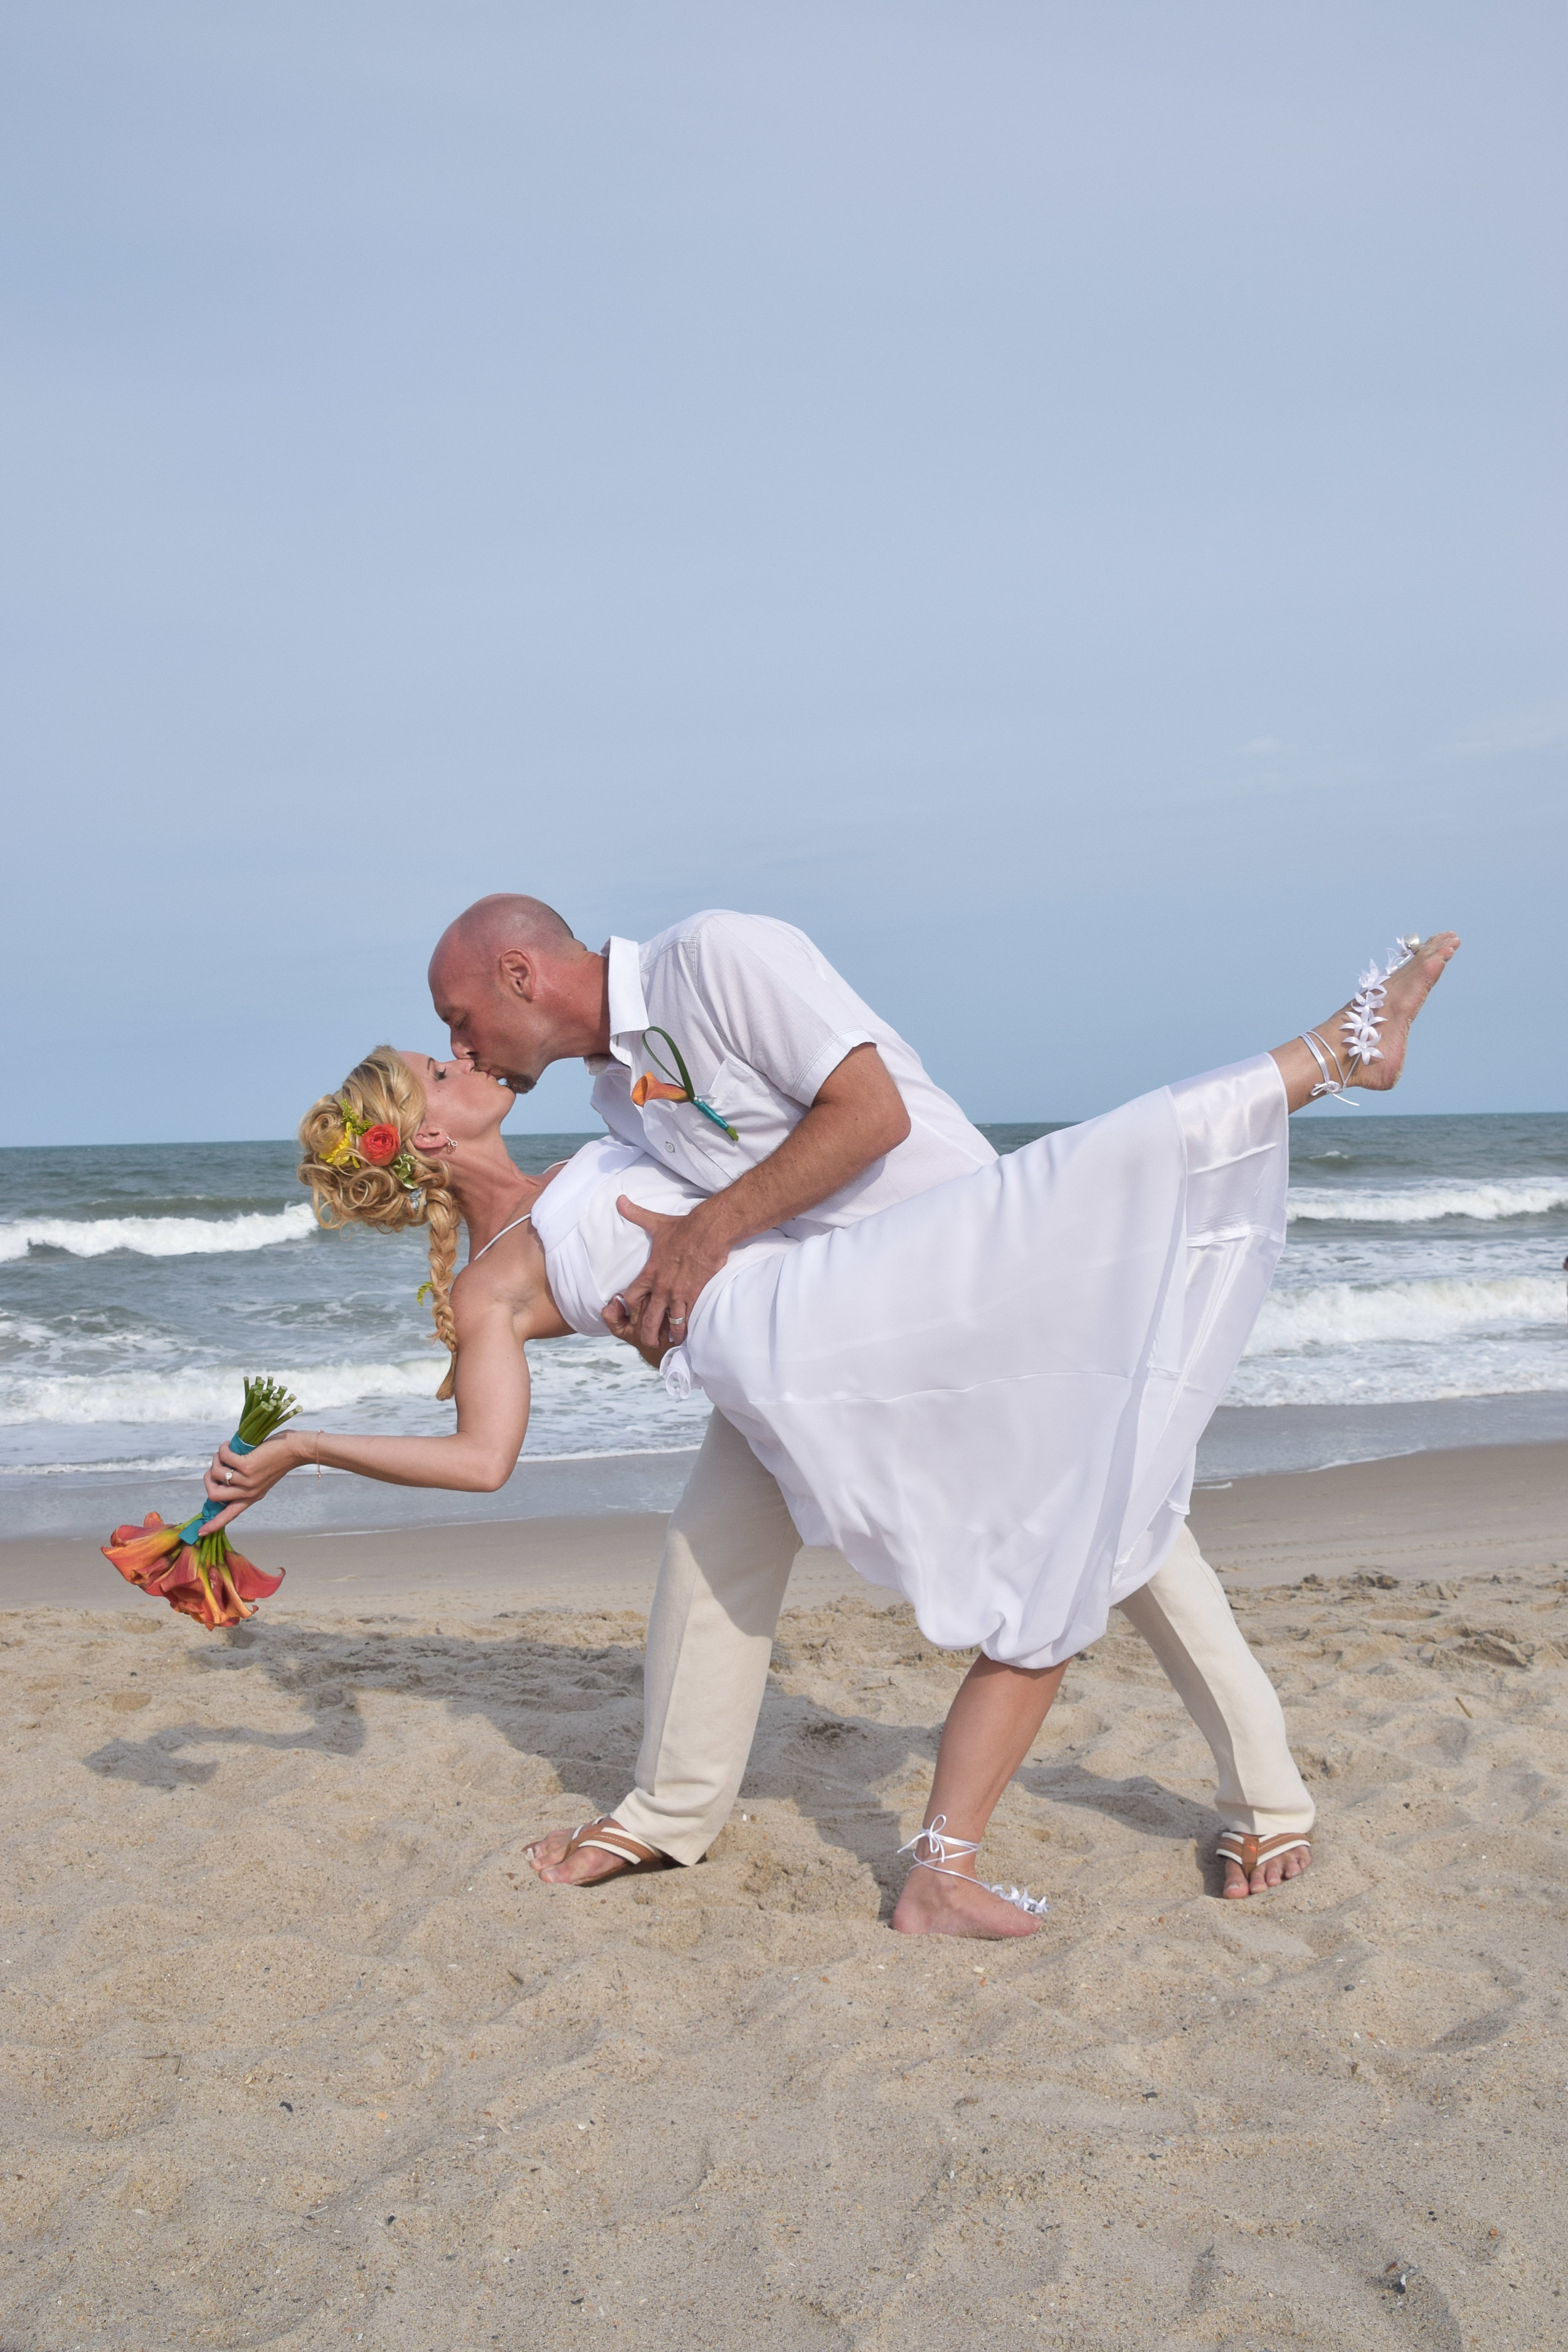 - Groom dipping his bride on Kure Beach, NC. Bride holding bouquet with flower in her hair. Ocean in the background. Billy Beach Photography.